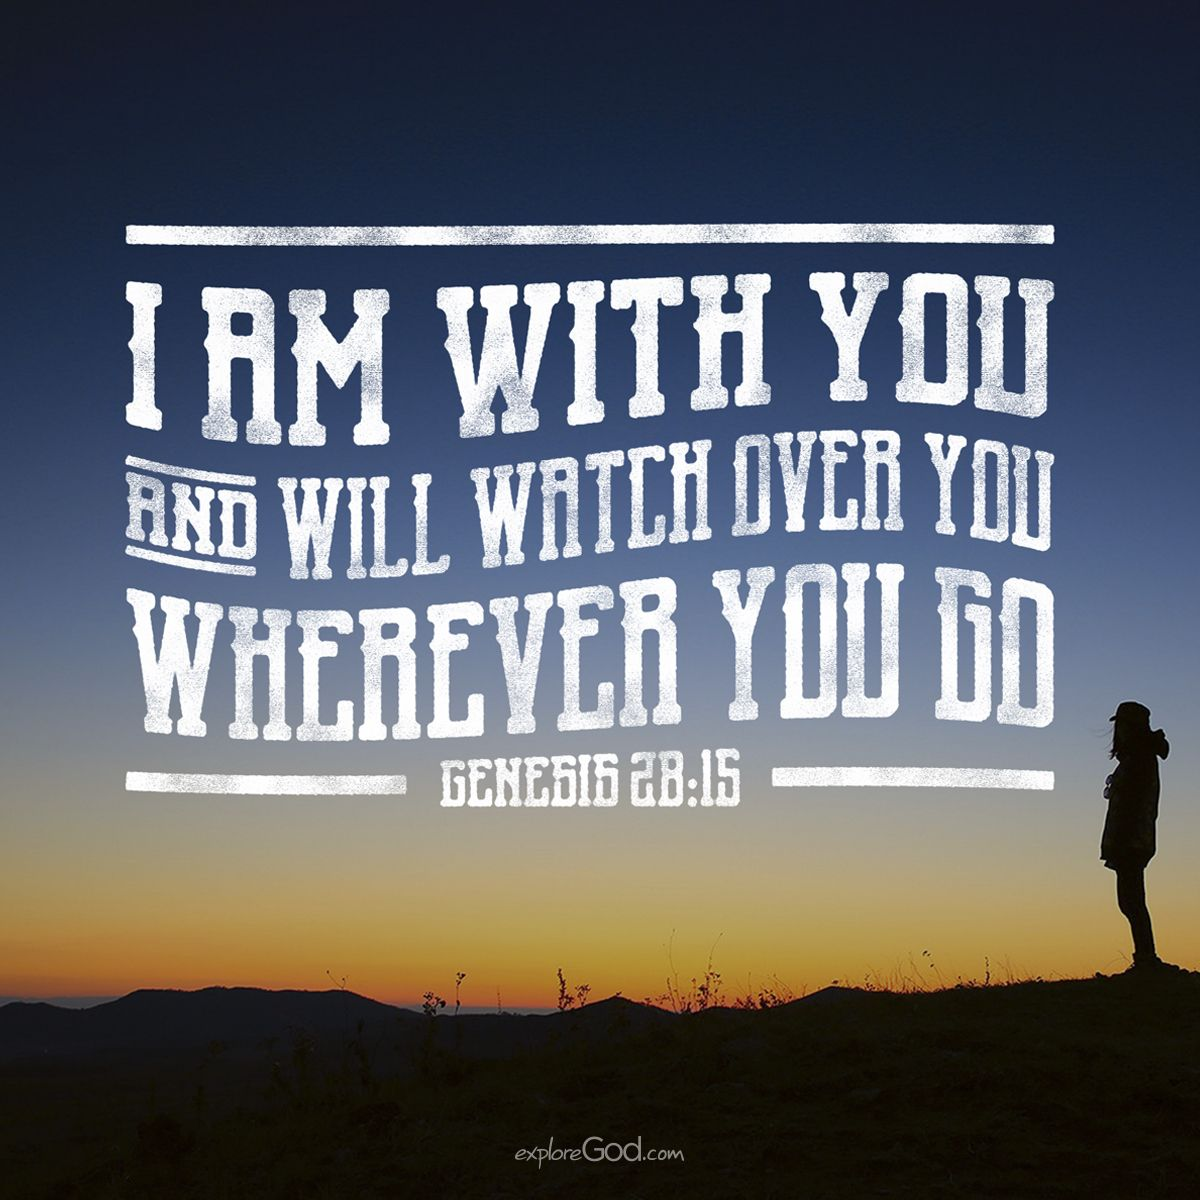 I Am With You And Will Watch Over You Wherever You Go Genesis 28